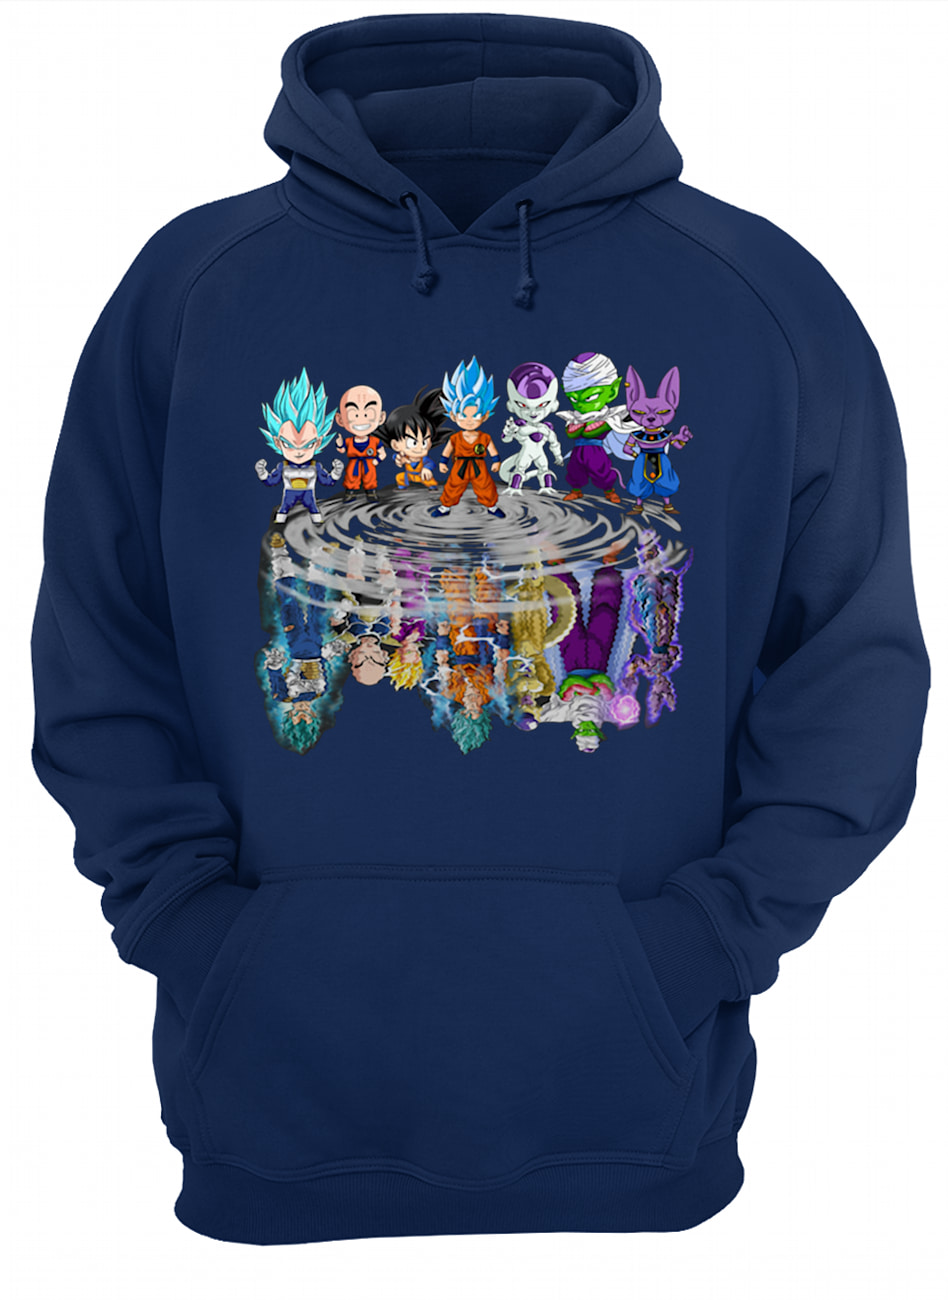 Dragon ball characters water mirror hoodie